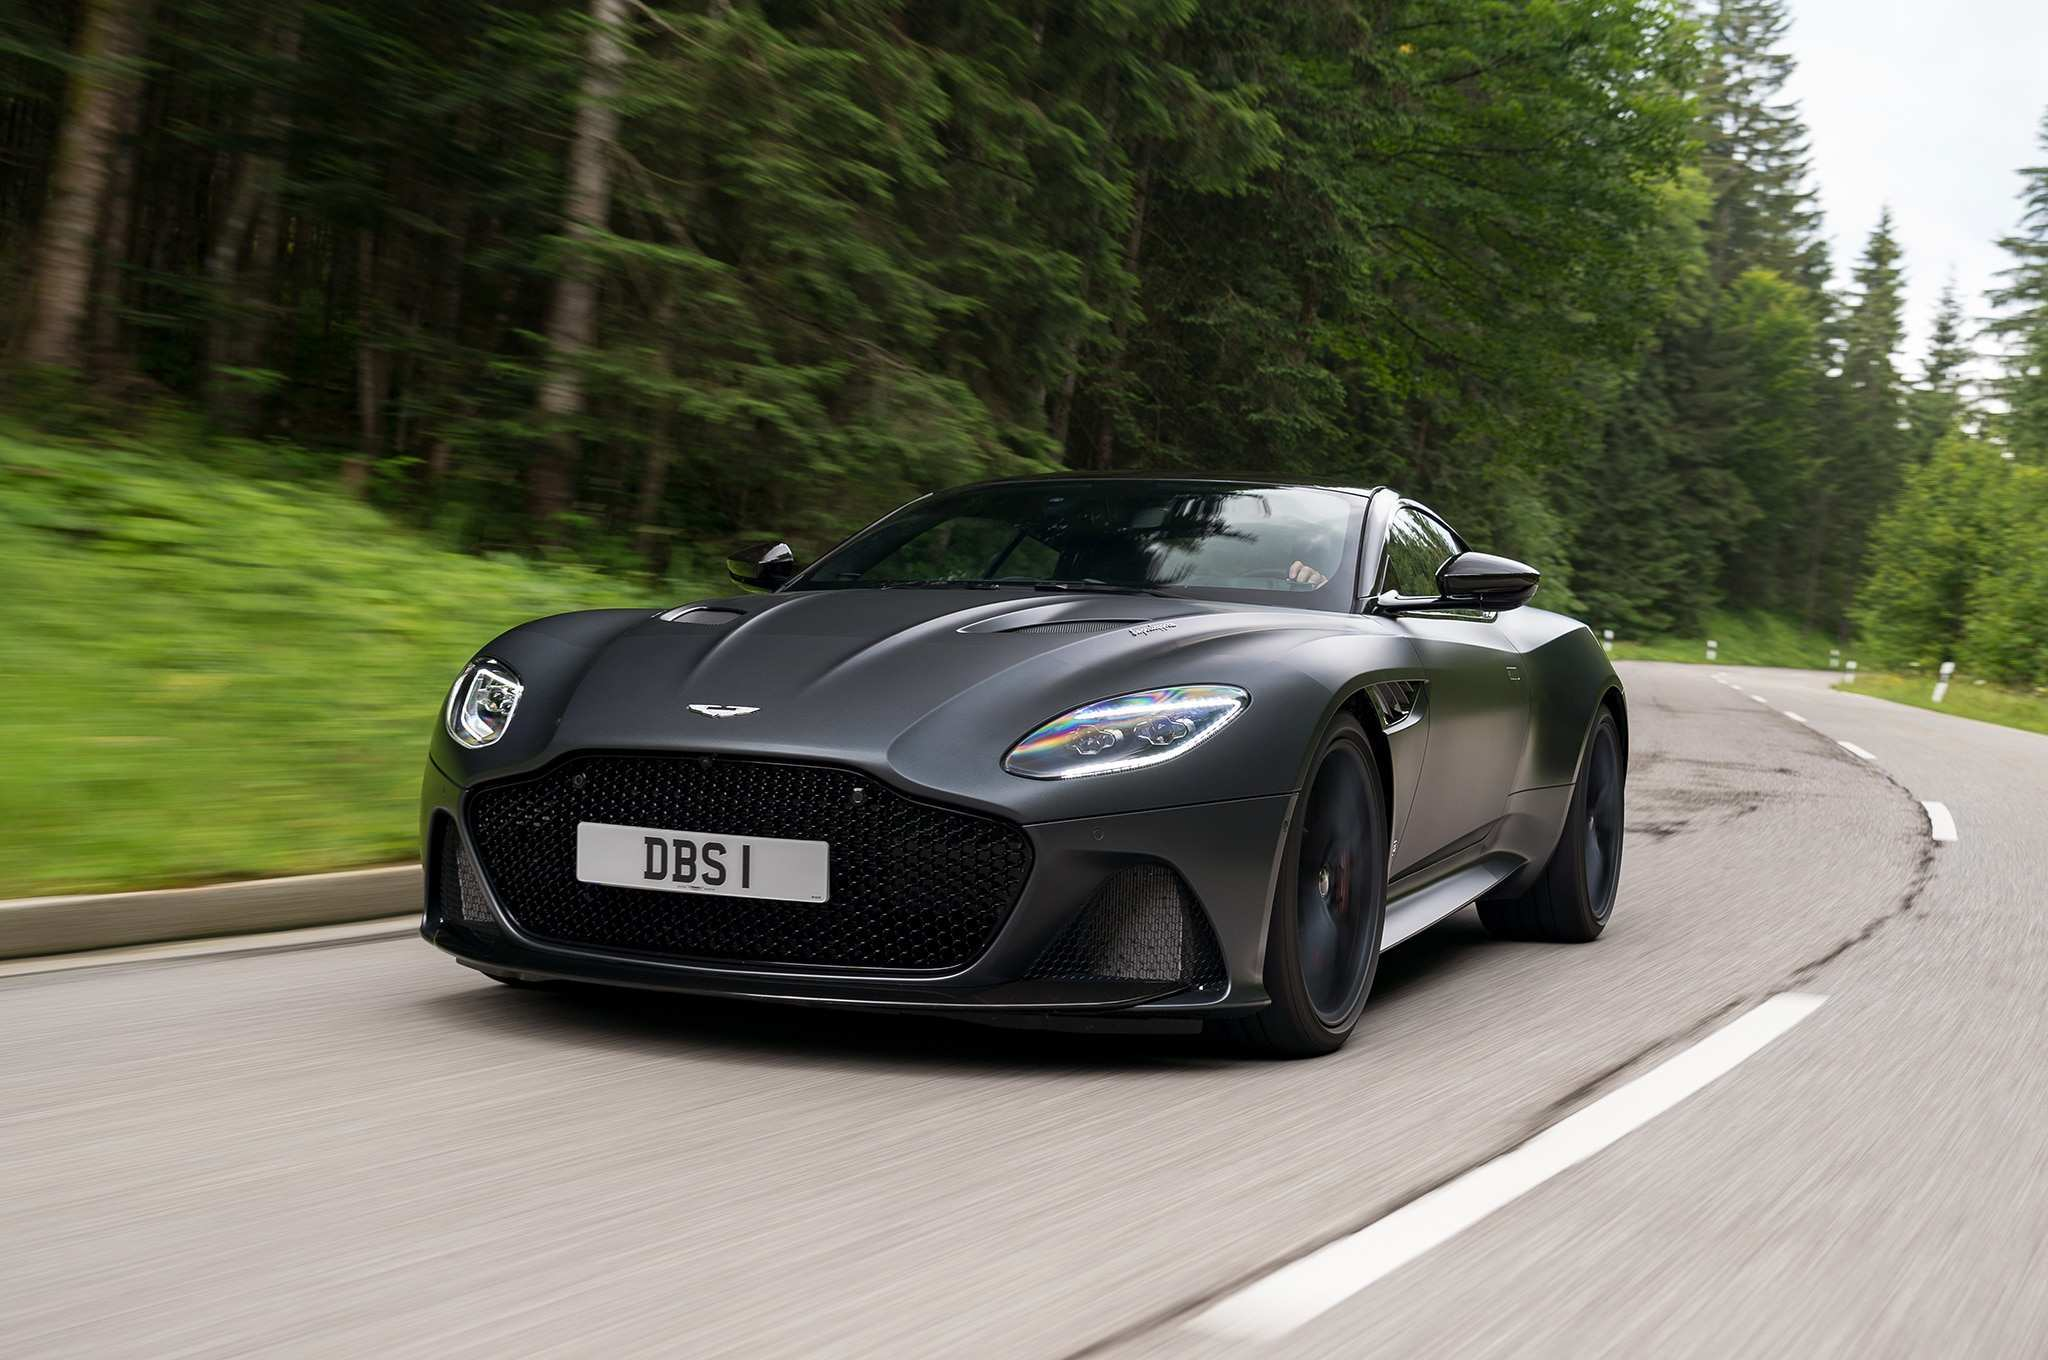 44 The 2019 Aston Dbs Picture for 2019 Aston Dbs